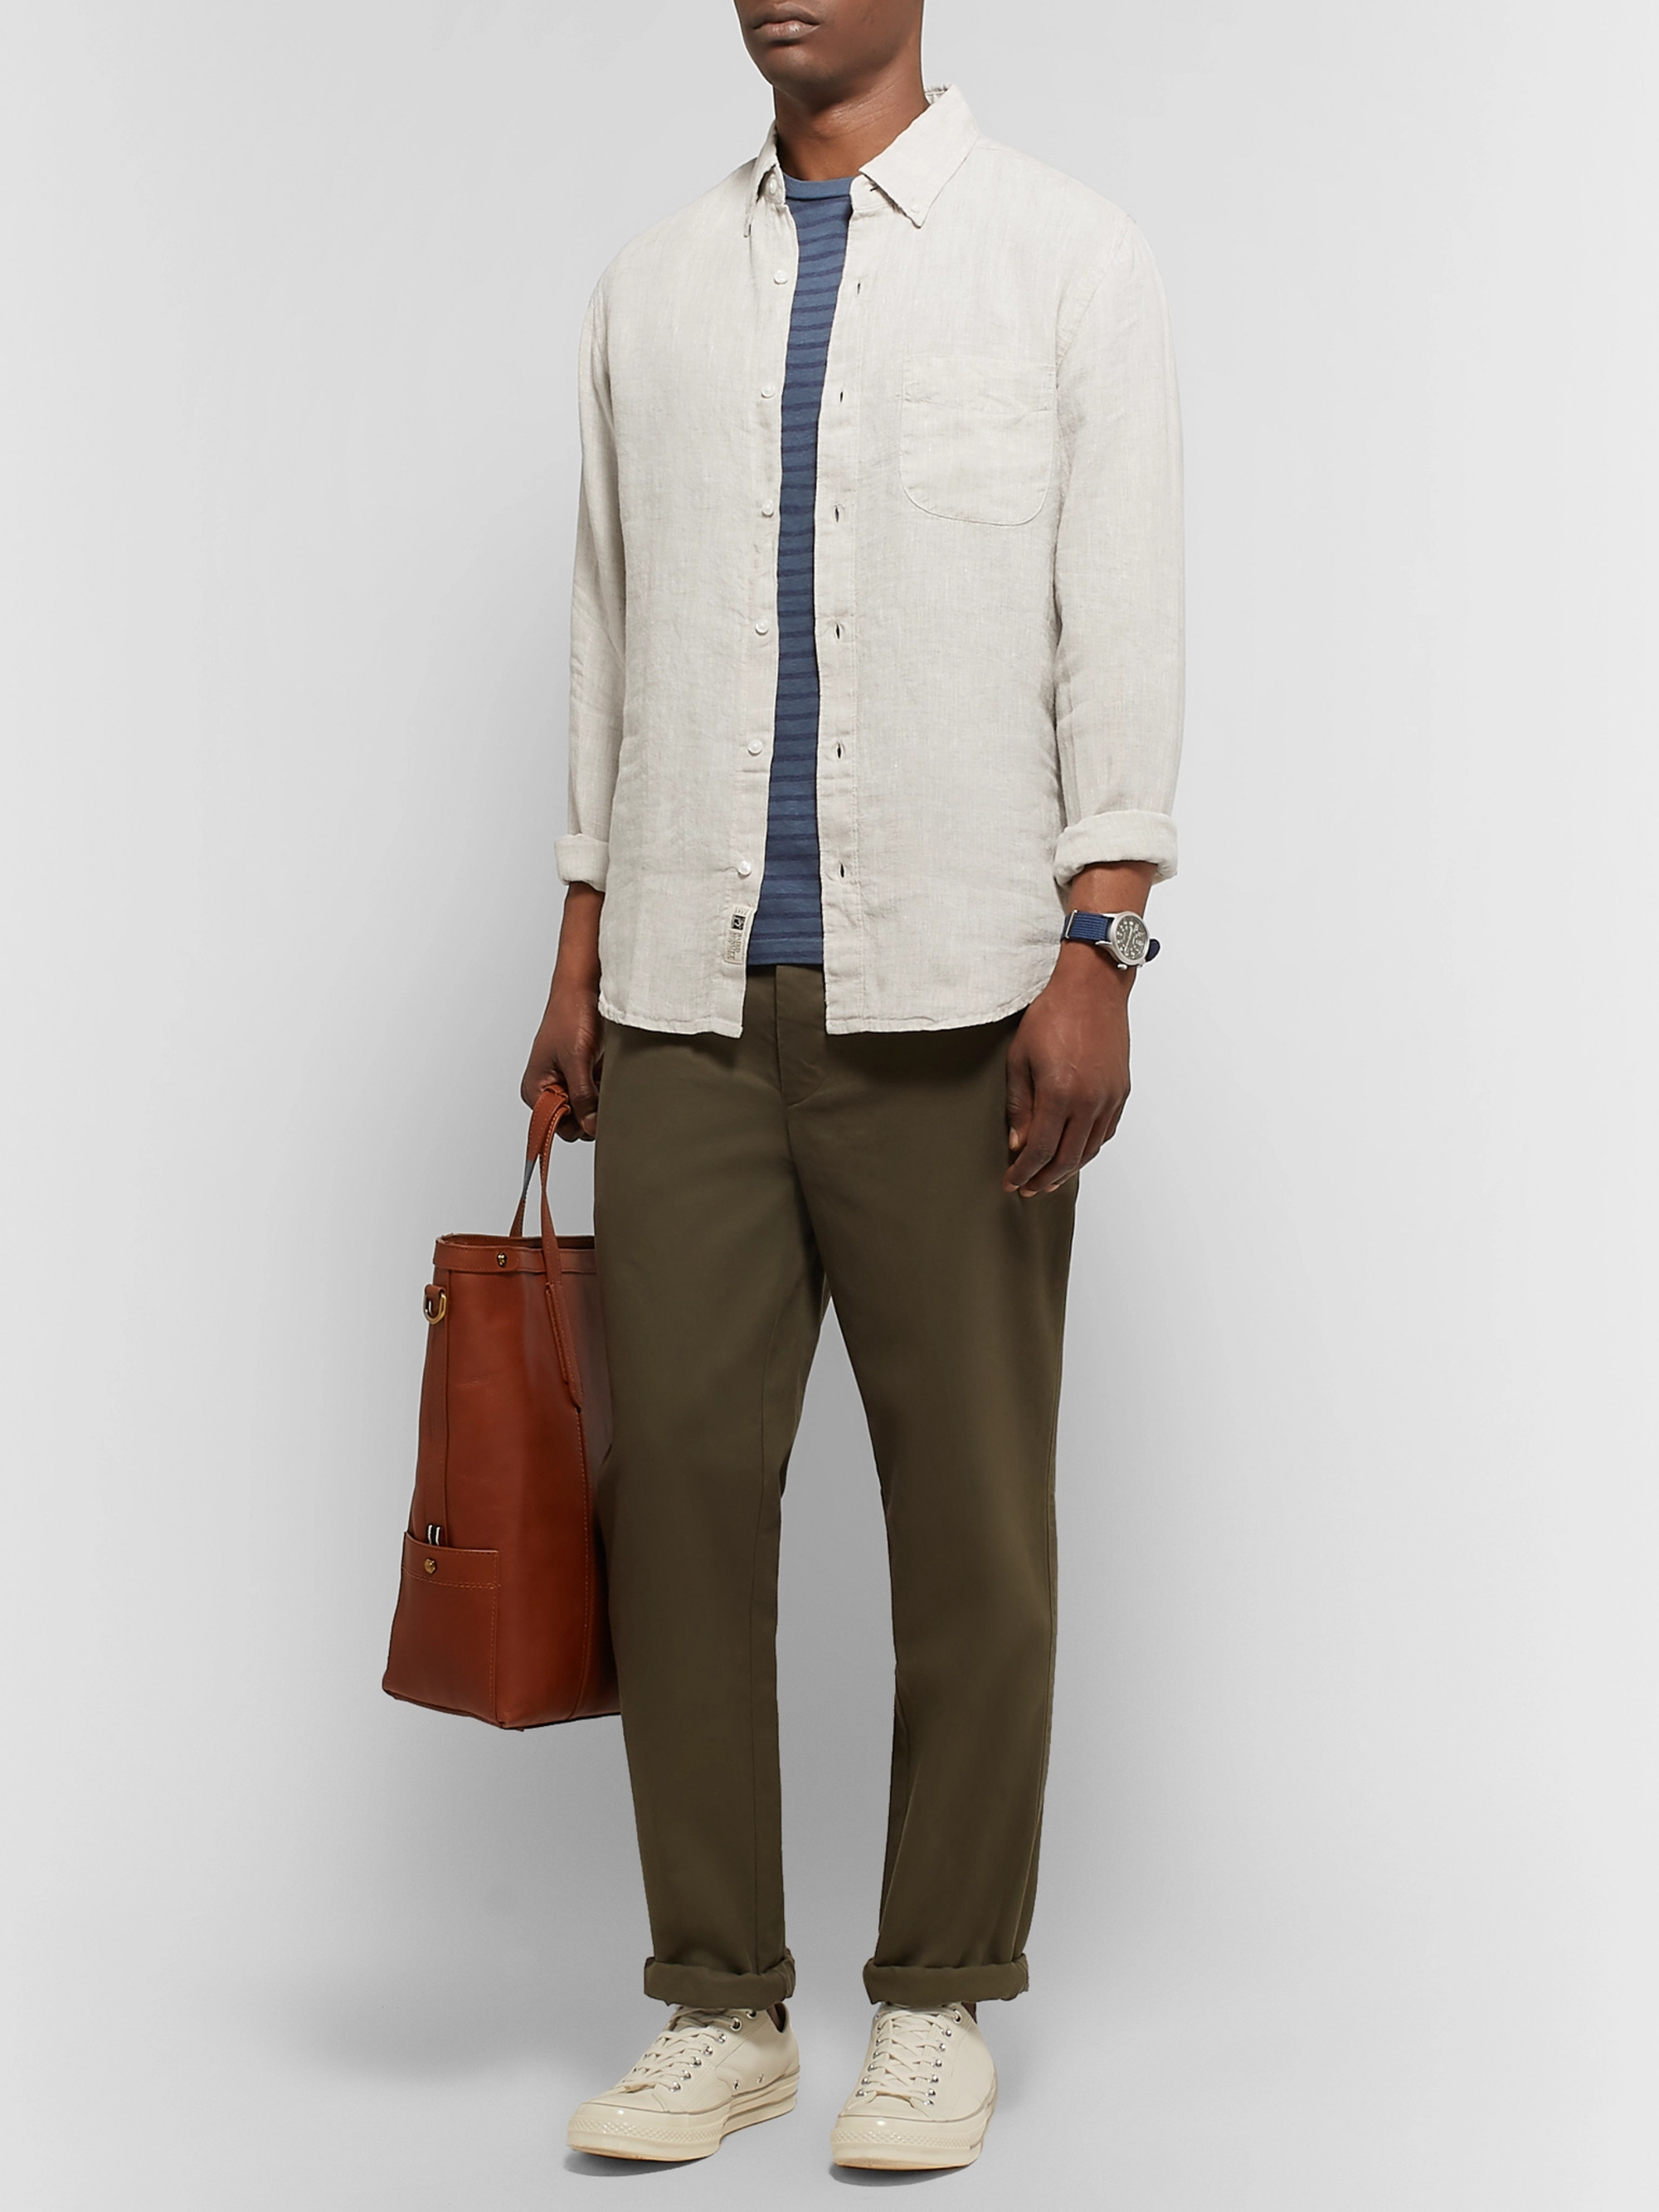 J.Crew Slim-Fit Button-Down Collar Linen Shirt